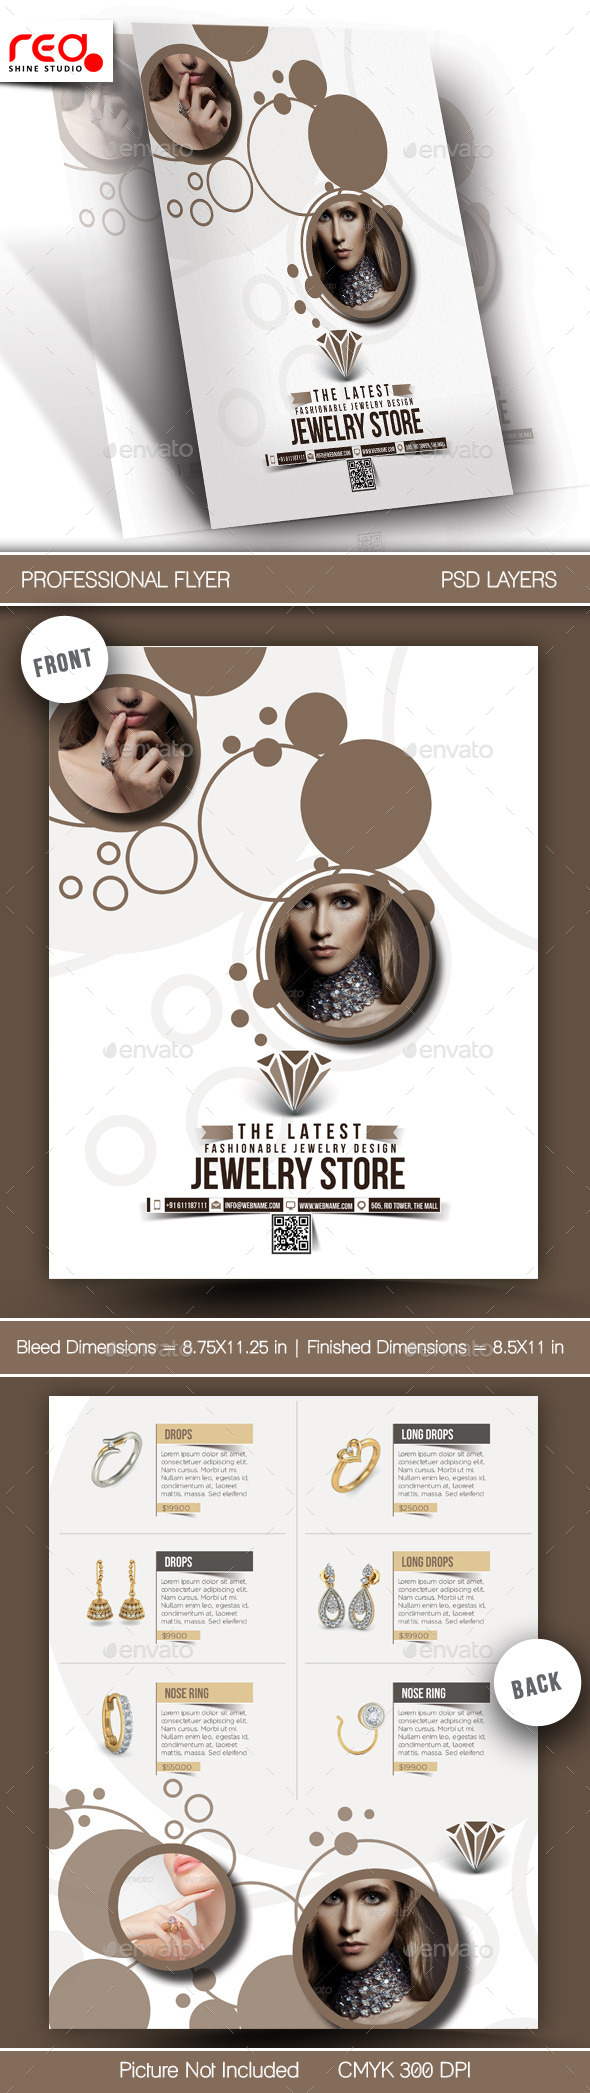 GraphicRiver Jewelry Store Flyer & Poster Template 11010688